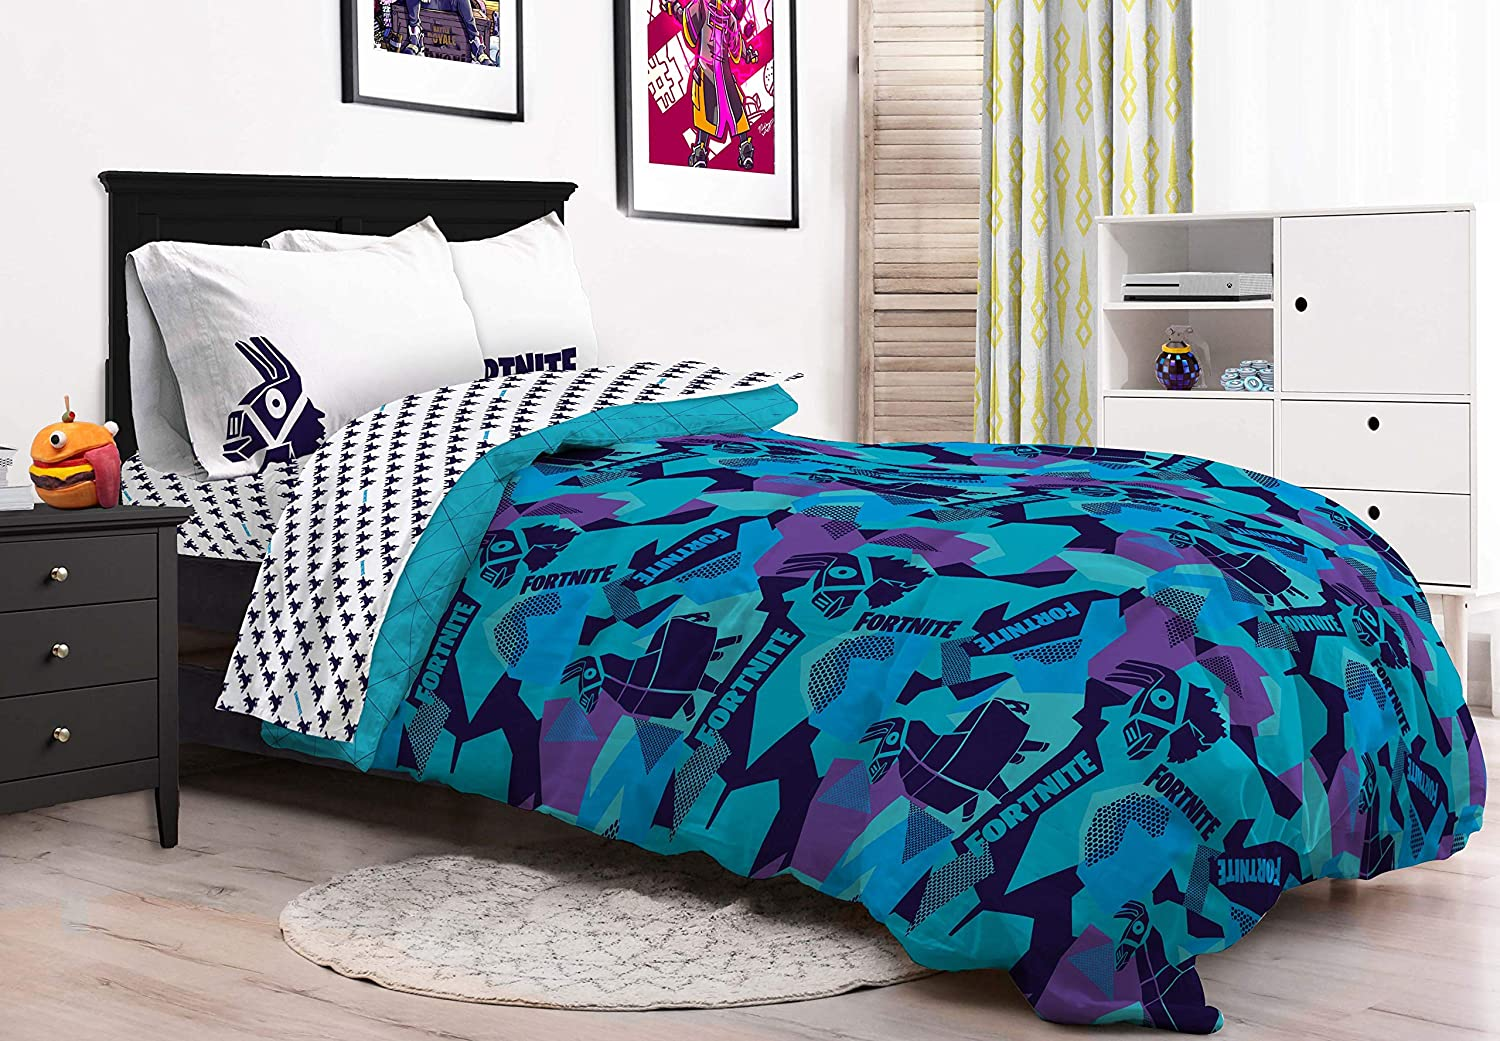 Jay Franco Fortnite Llama Geo 5 Piece Full Bed Set Official Fortnite Product Includes Reversible Comforter /& Sheet Set Super Soft Fade Resistant Microfiber